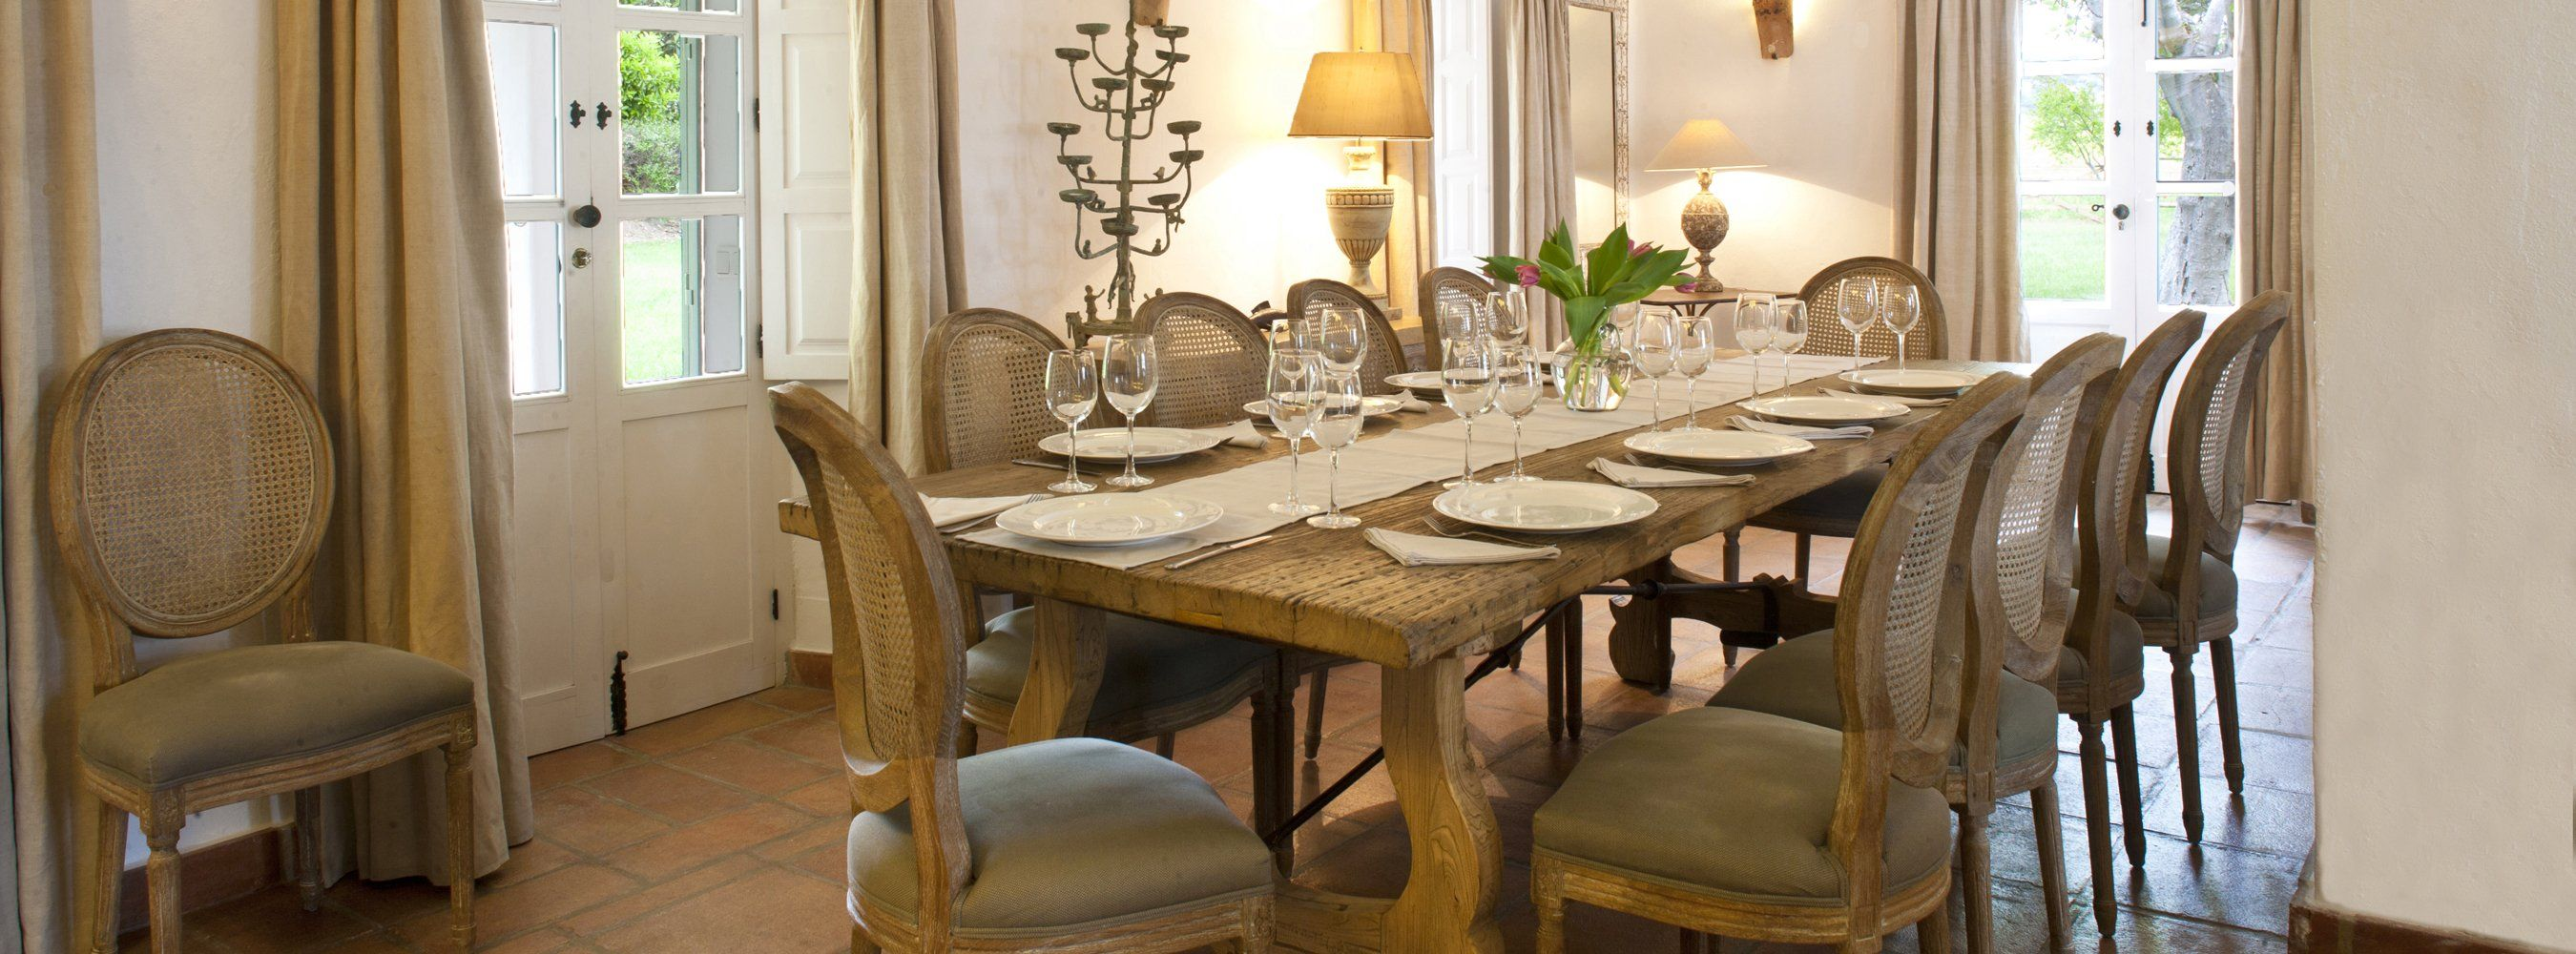 luxury dining experience in ronda villa